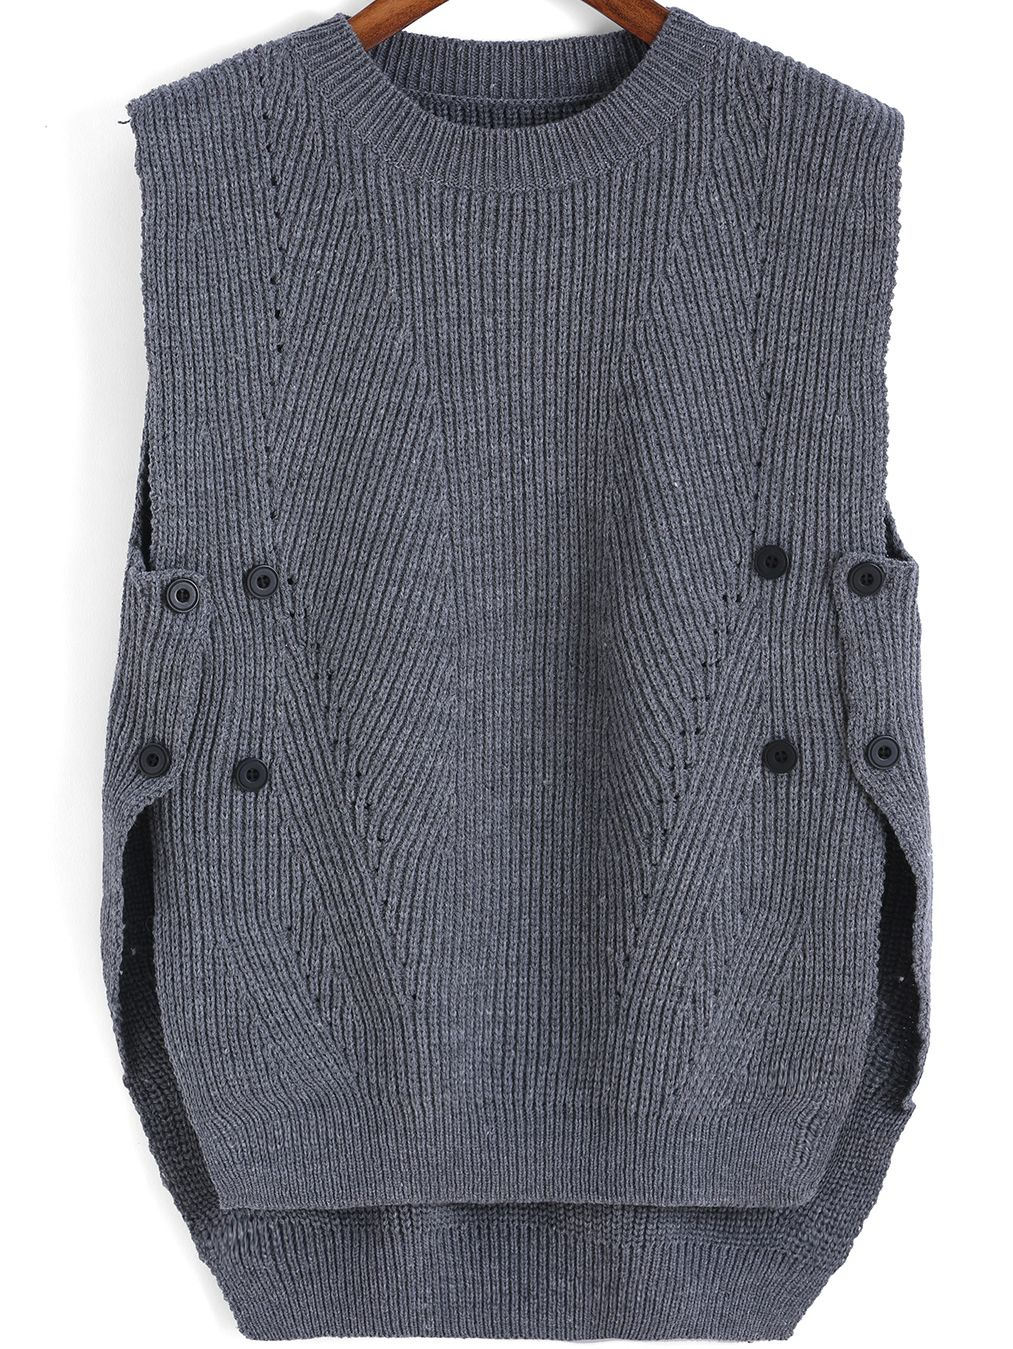 Grey Round Neck Buttons Knit Sweater | Rounding, Gray and Shopping